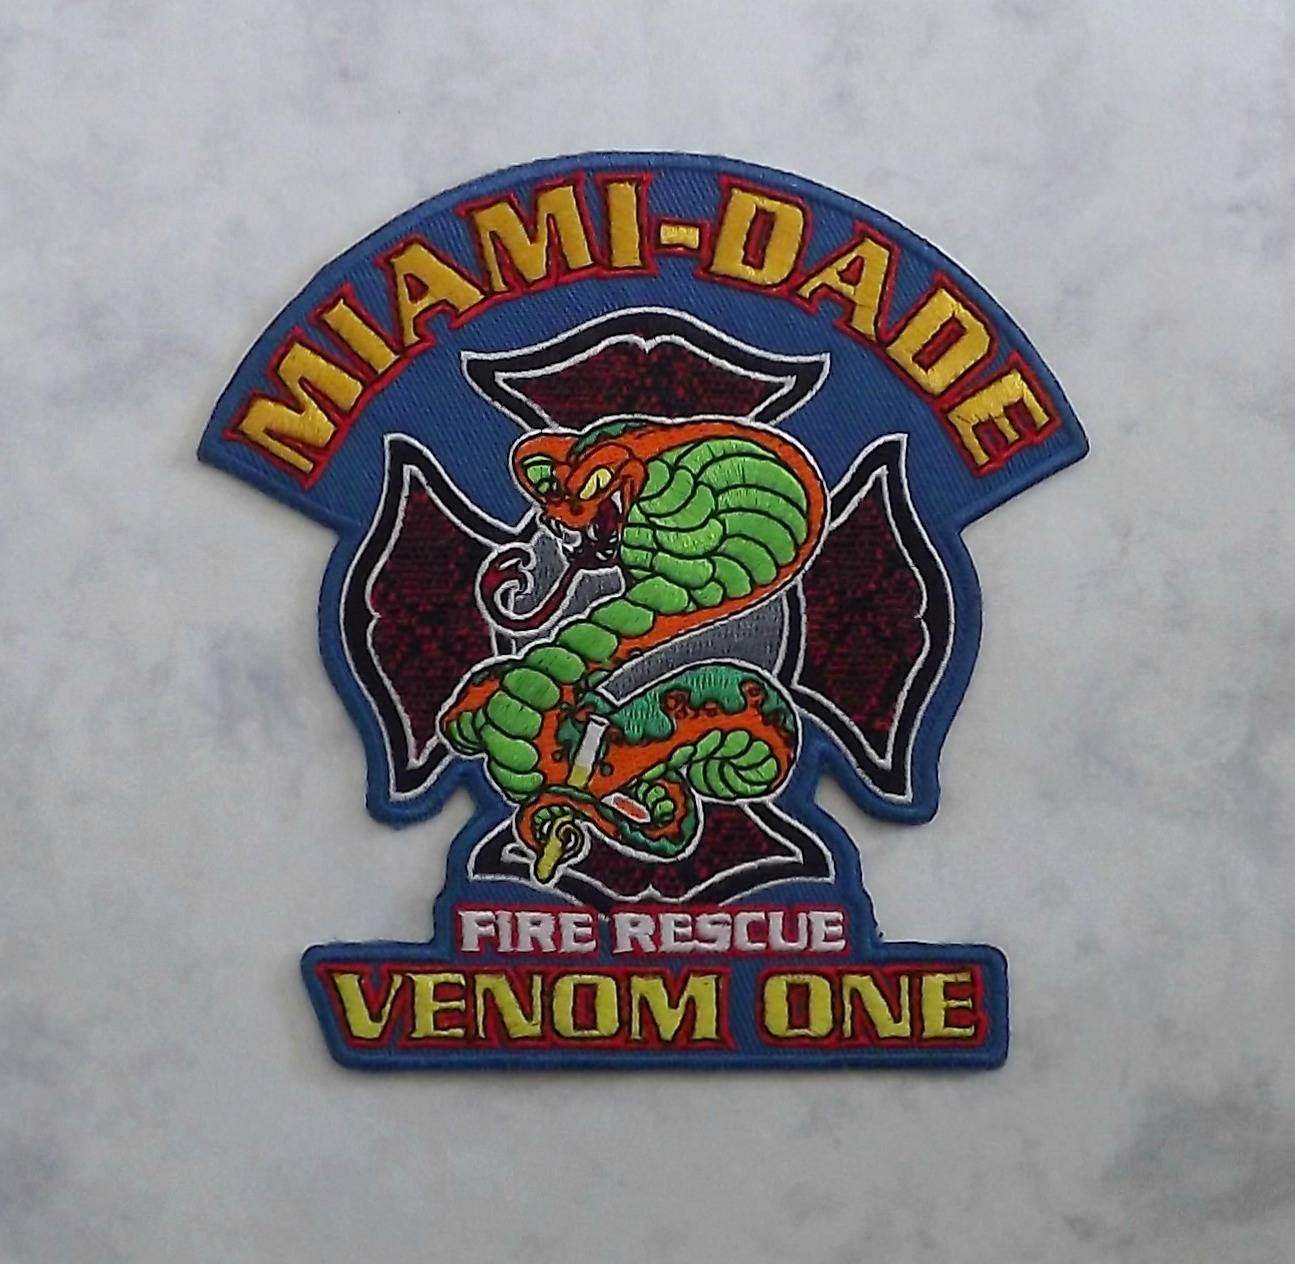 Miami-Dade Fire Rescue, Venom One (close up)